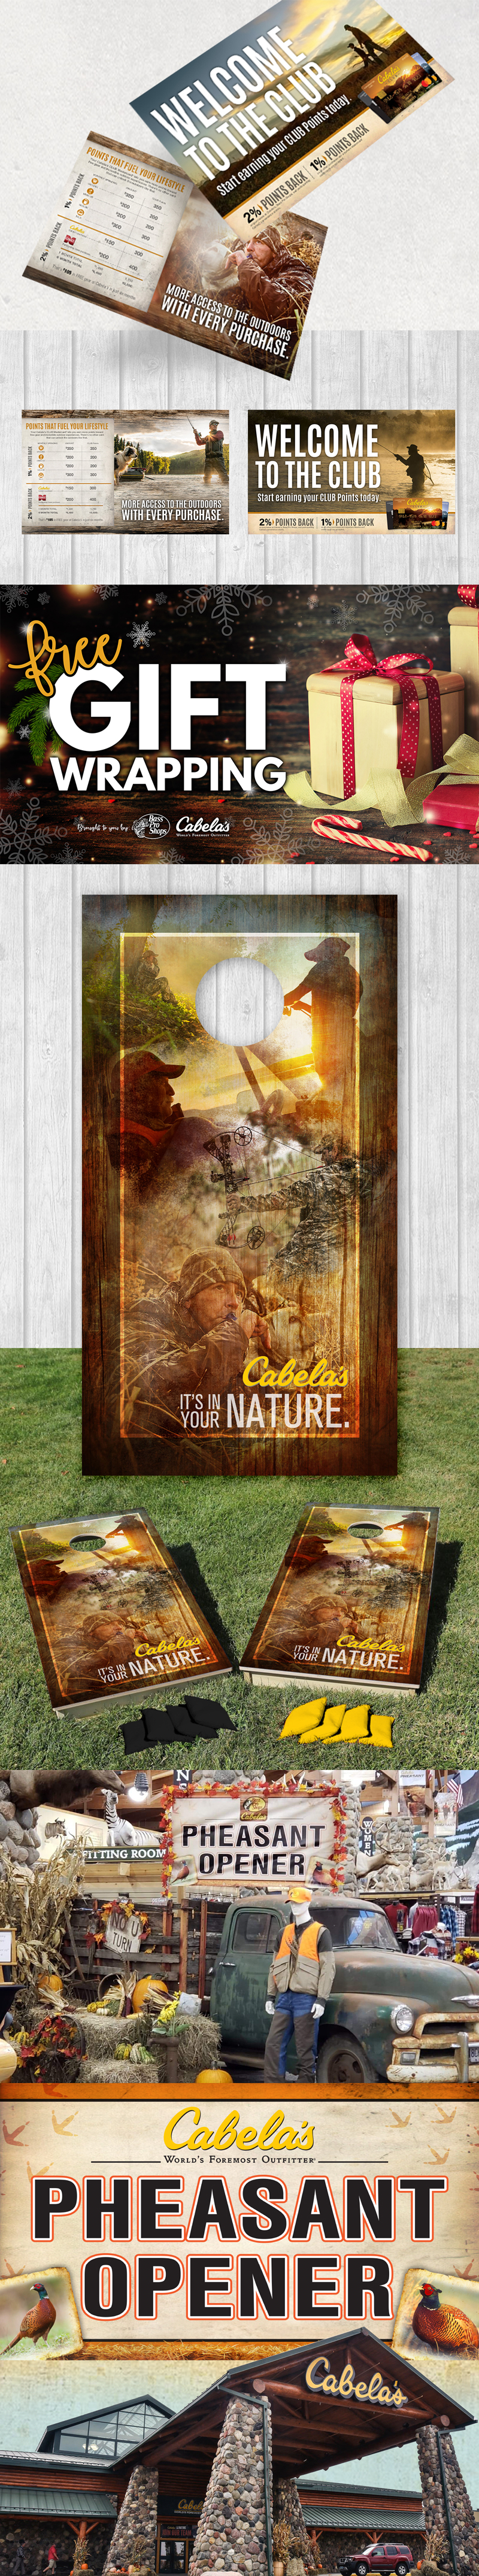 Cabela's artwork. Banners, postcards, and corn hole board